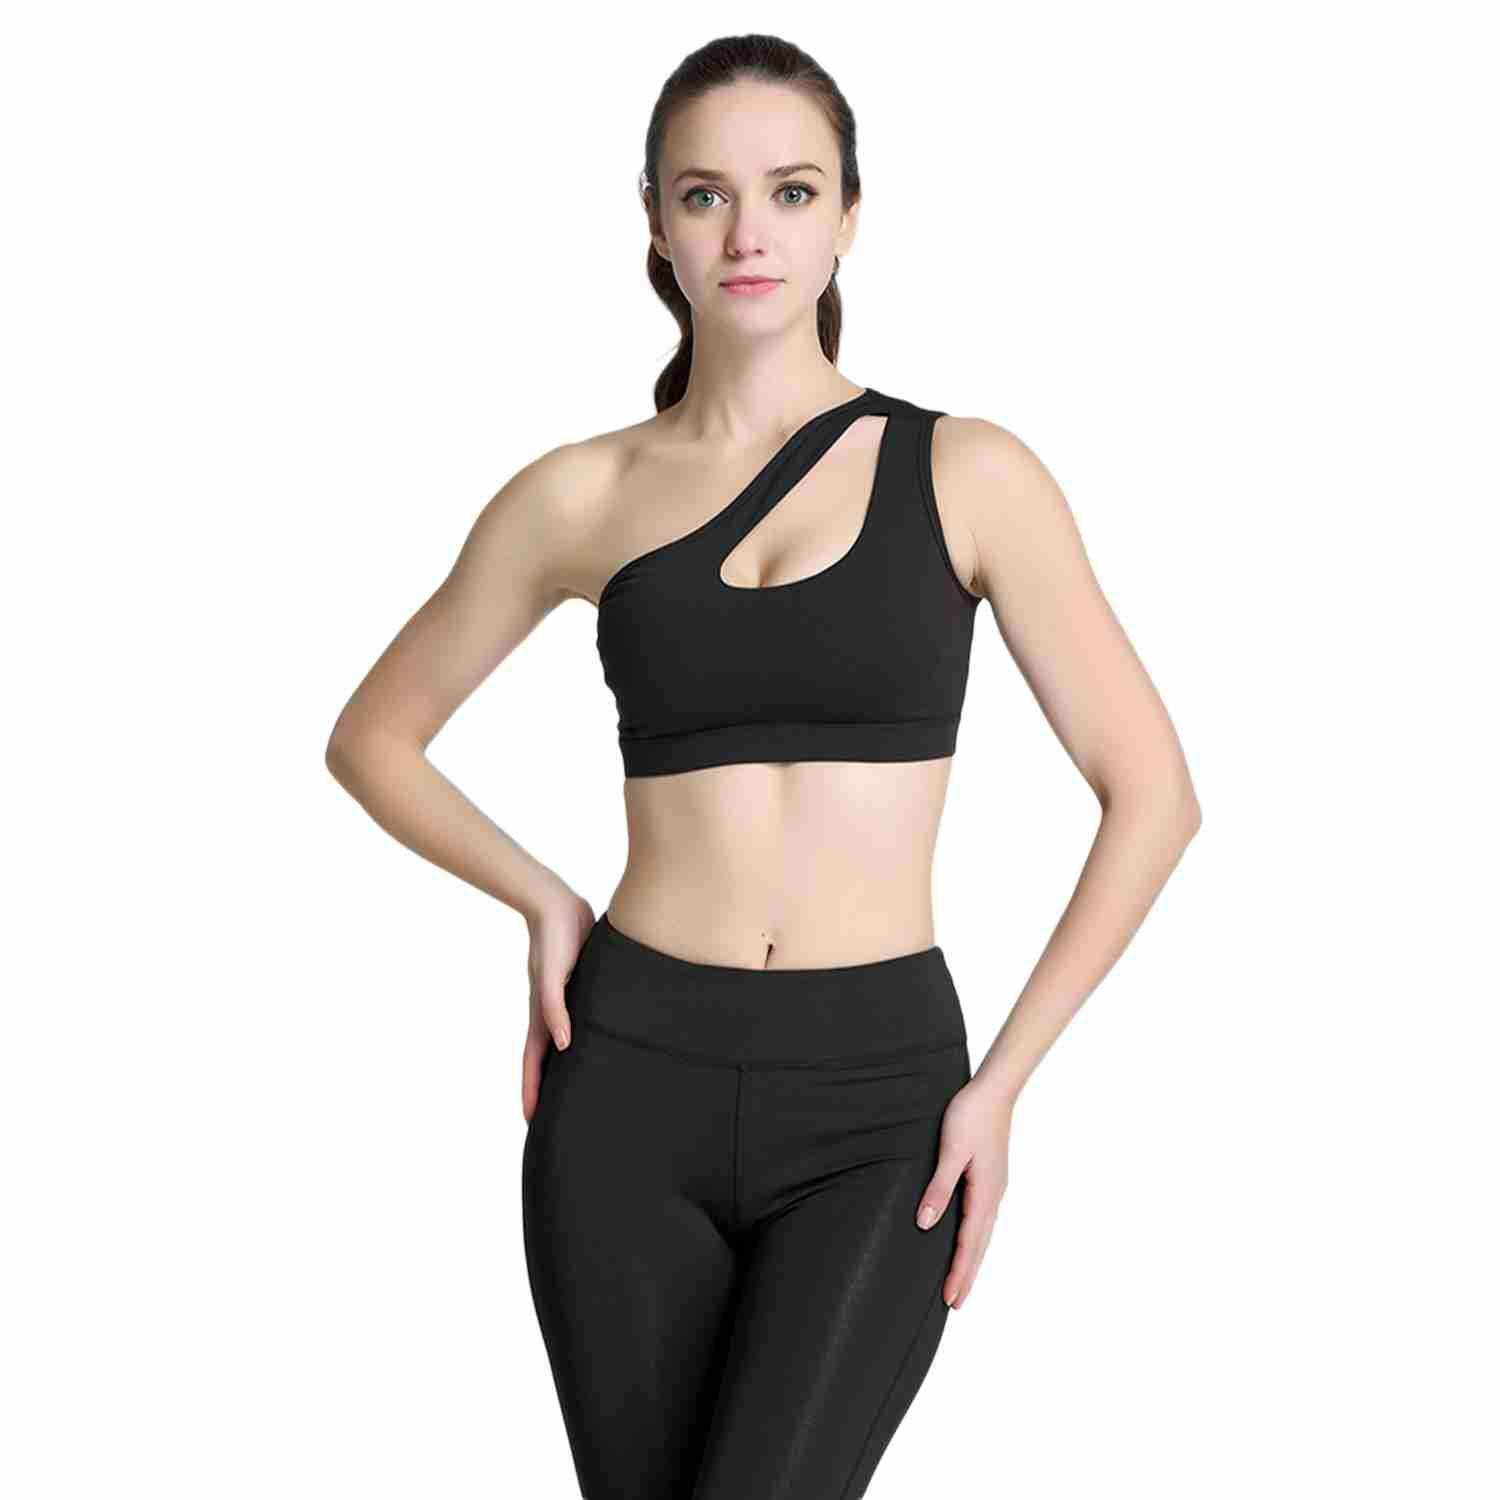 High-Elastic One-Shoulder Sports Bra Ladies Fitness Yoga Bra Gym Thickening Sports Shockproof Underwear Womens Bra By Ertic.